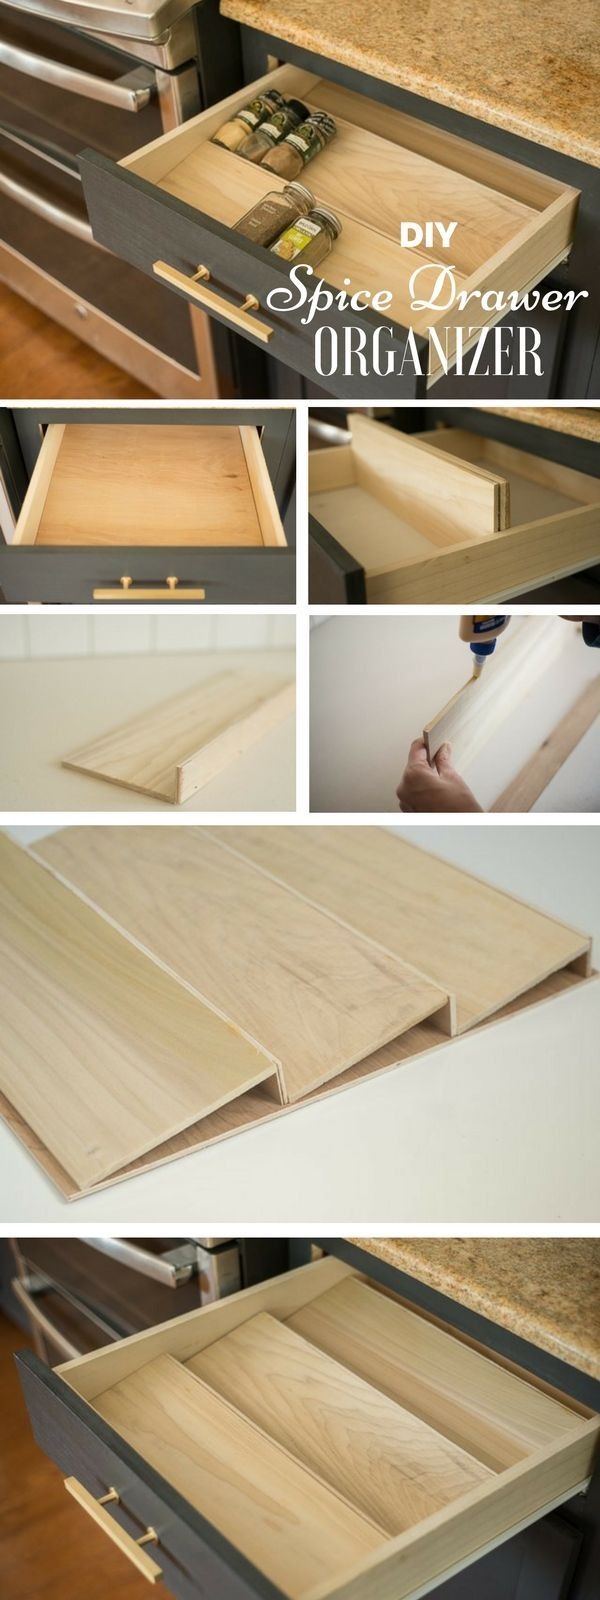 Check out the tutorial: #DIY Spice Drawer Organizer /istandarddesign/